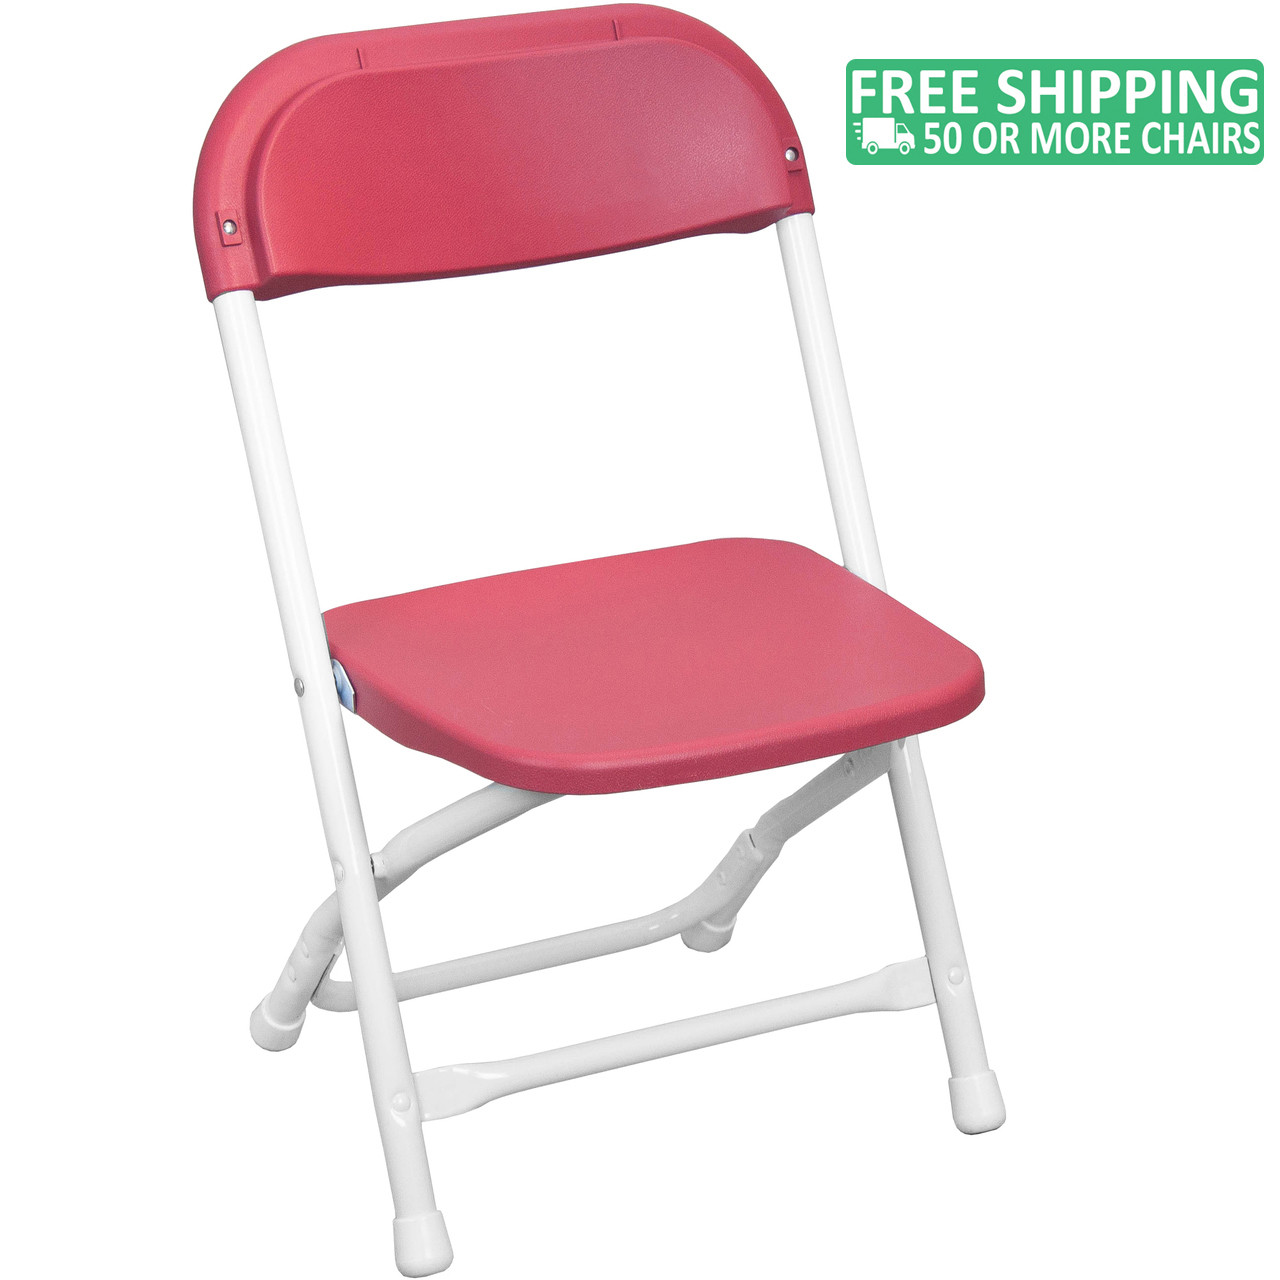 Plastic Kids Chairs Advantage Kids Red Plastic Folding Chair Ppfckid Red